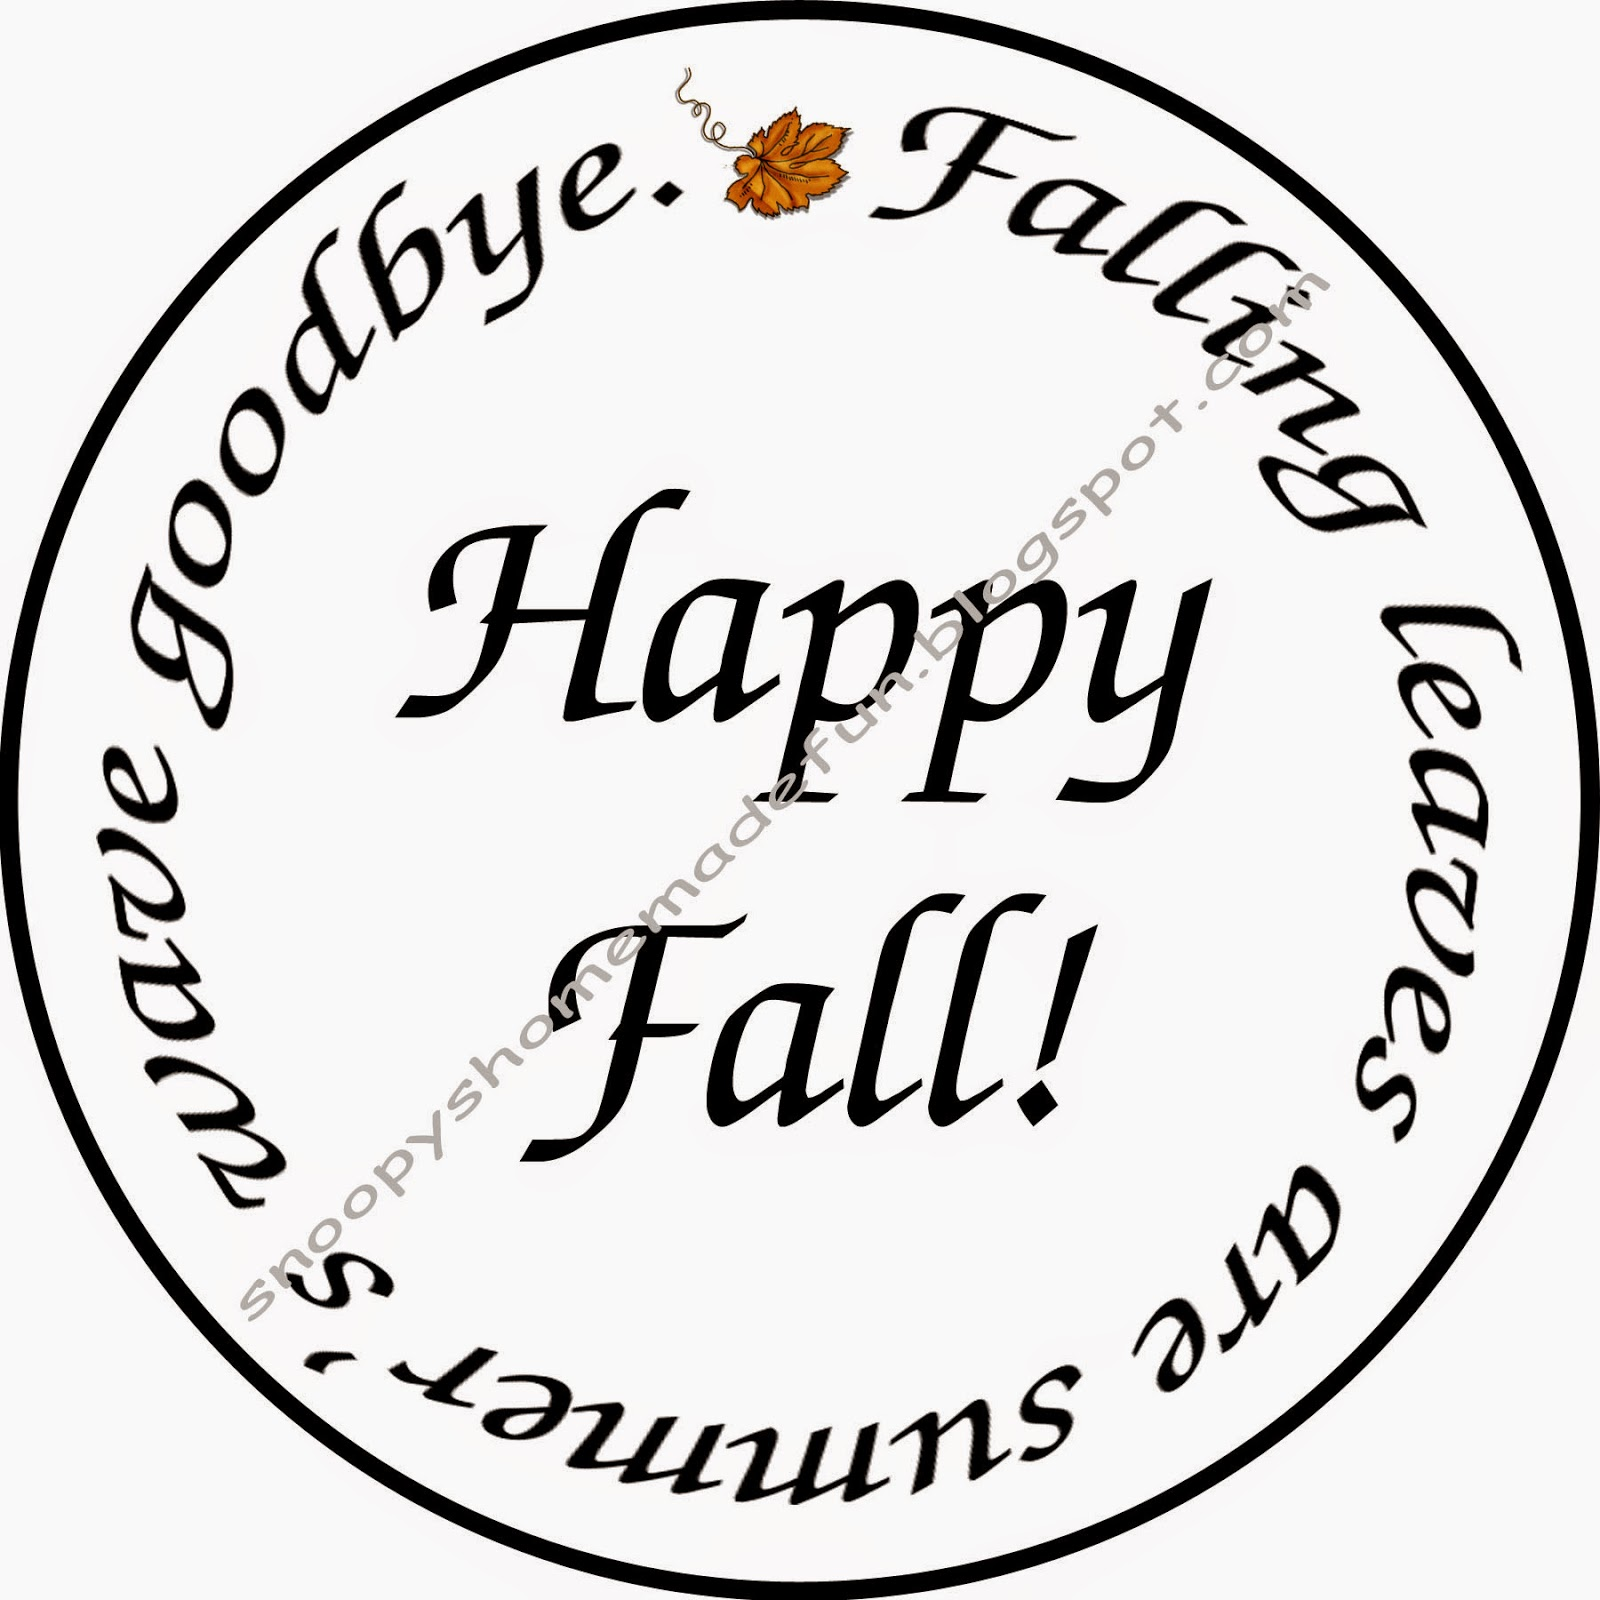 Fall, Autumn, Leaves, Free Digital Stamp